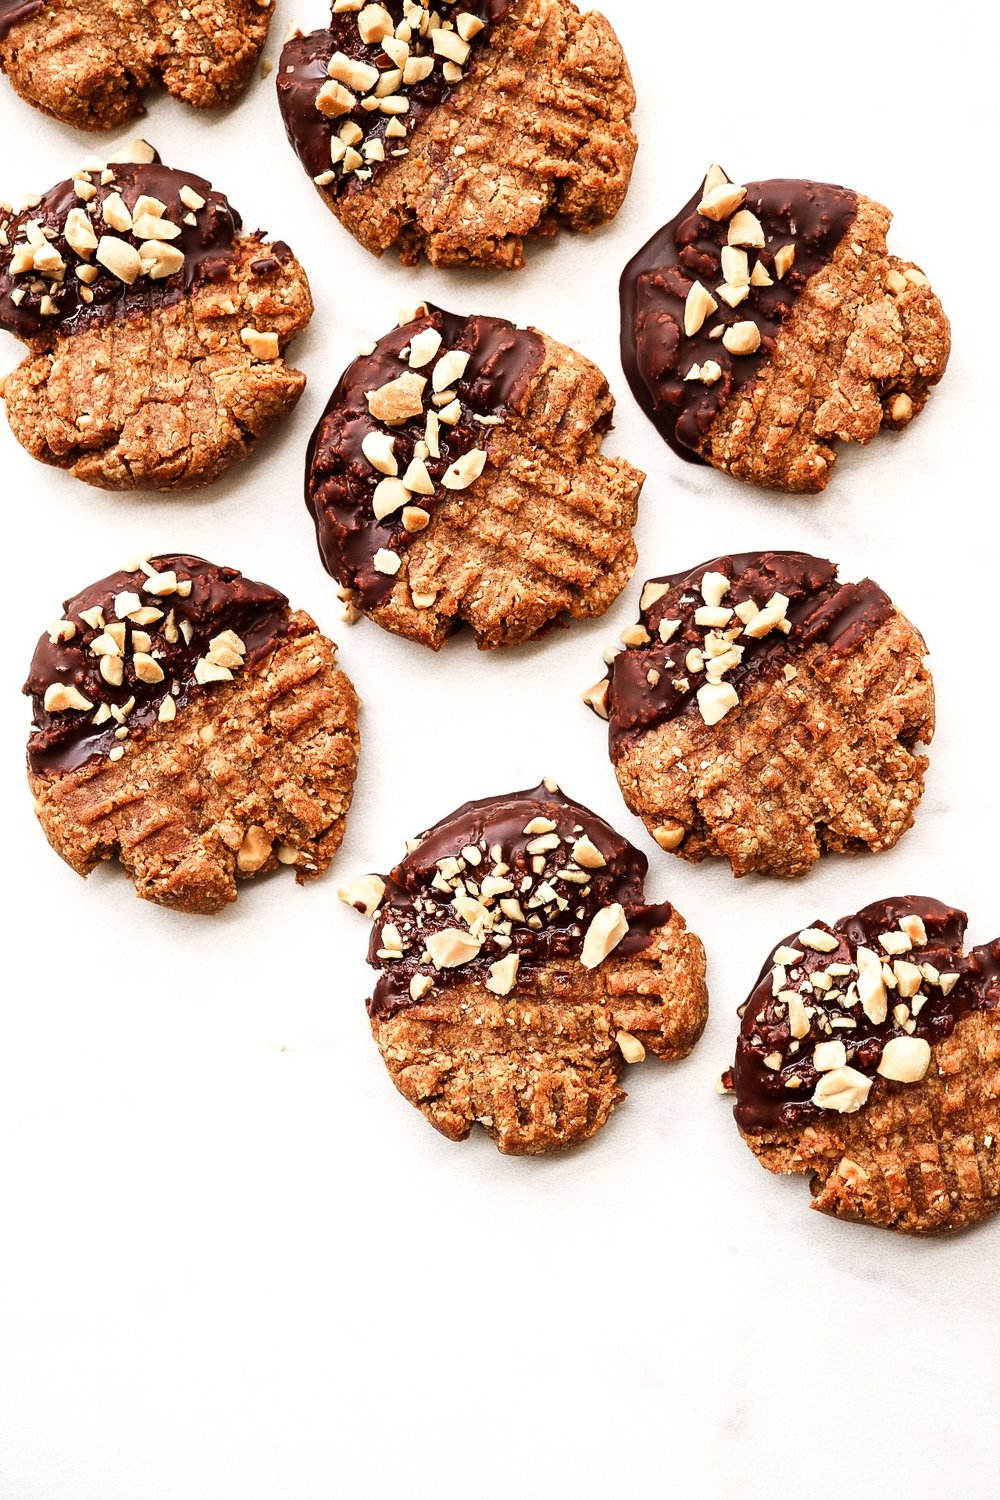 Dip them into dark chocolate and sprinkle chopped peanuts on top.